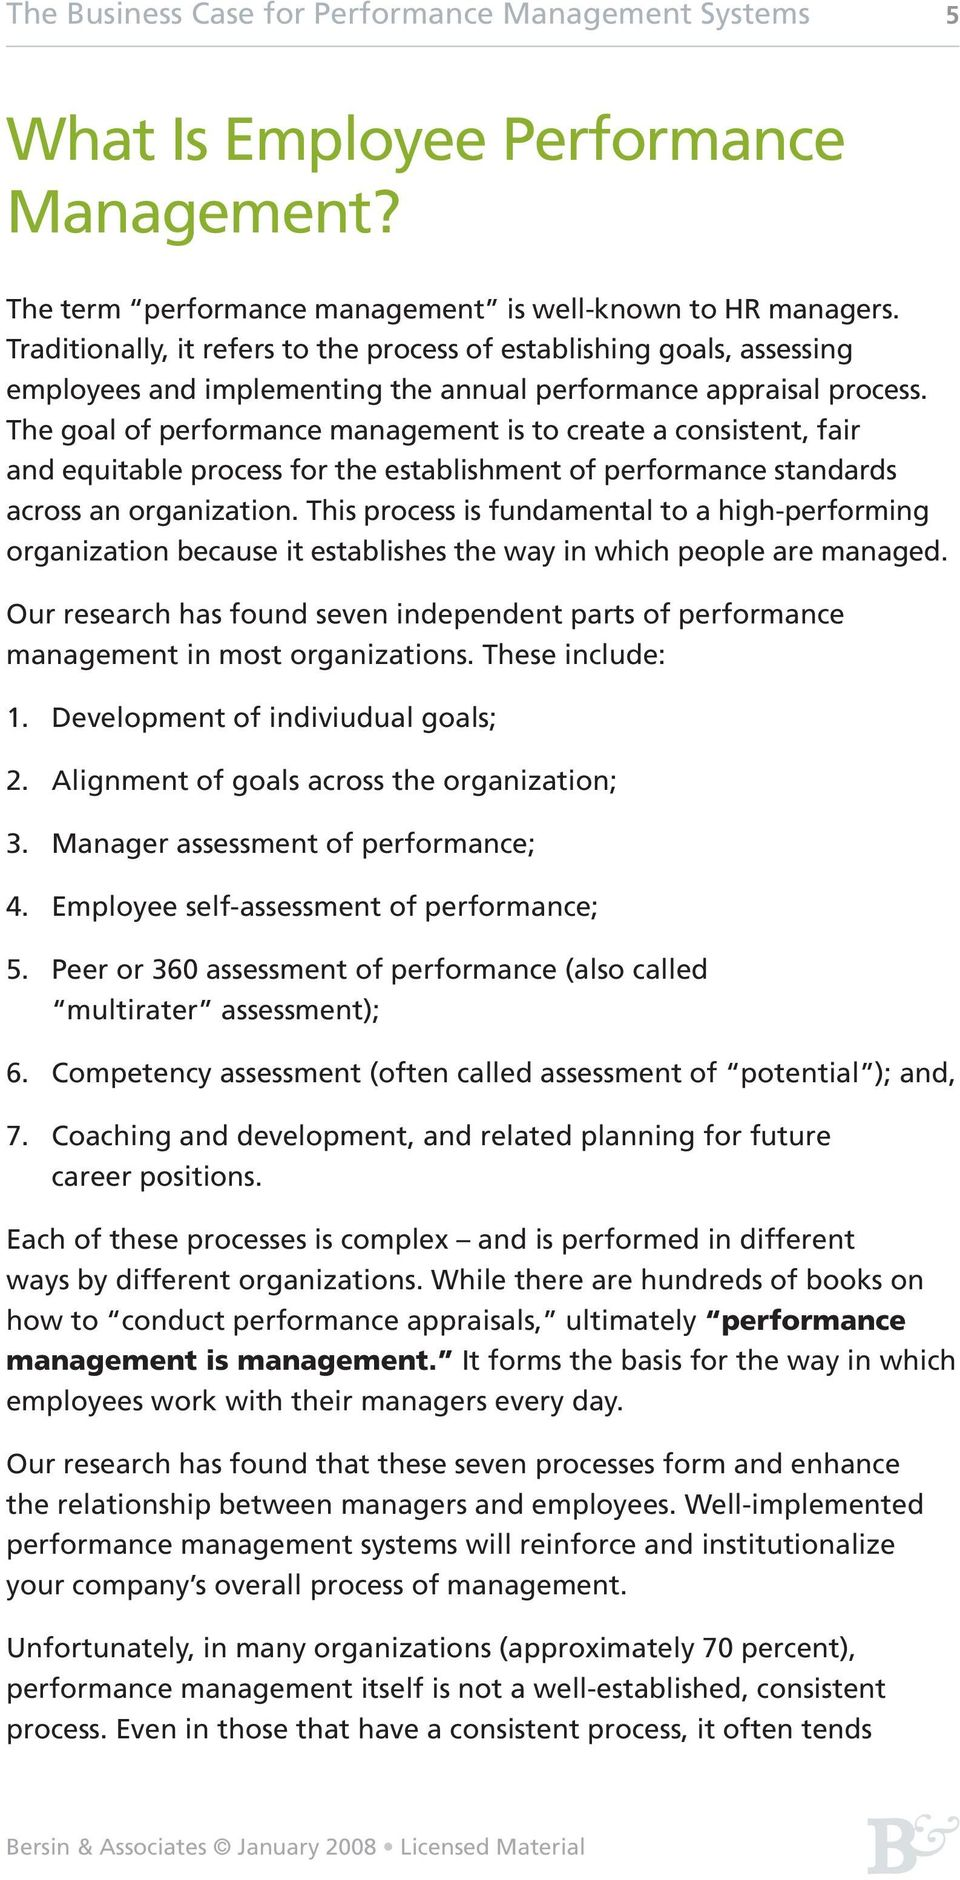 The goal of performance management is to create a consistent, fair and equitable process for the establishment of performance standards across an organization.